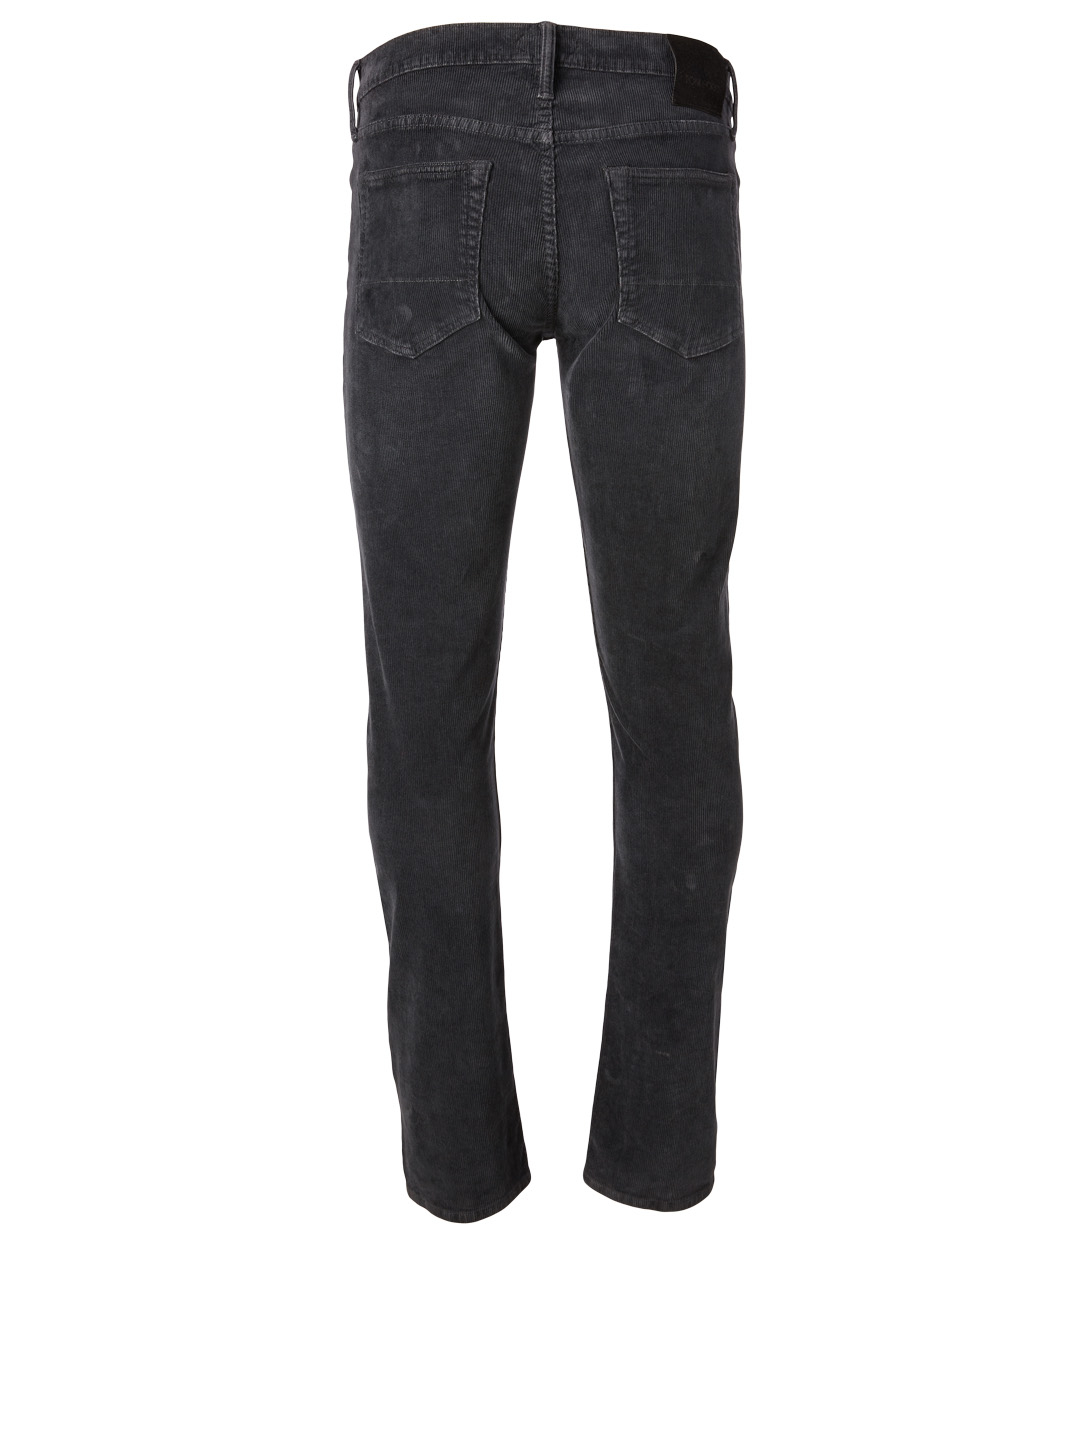 TOM FORD Slim-Fit Corduroy Pants Men's Grey